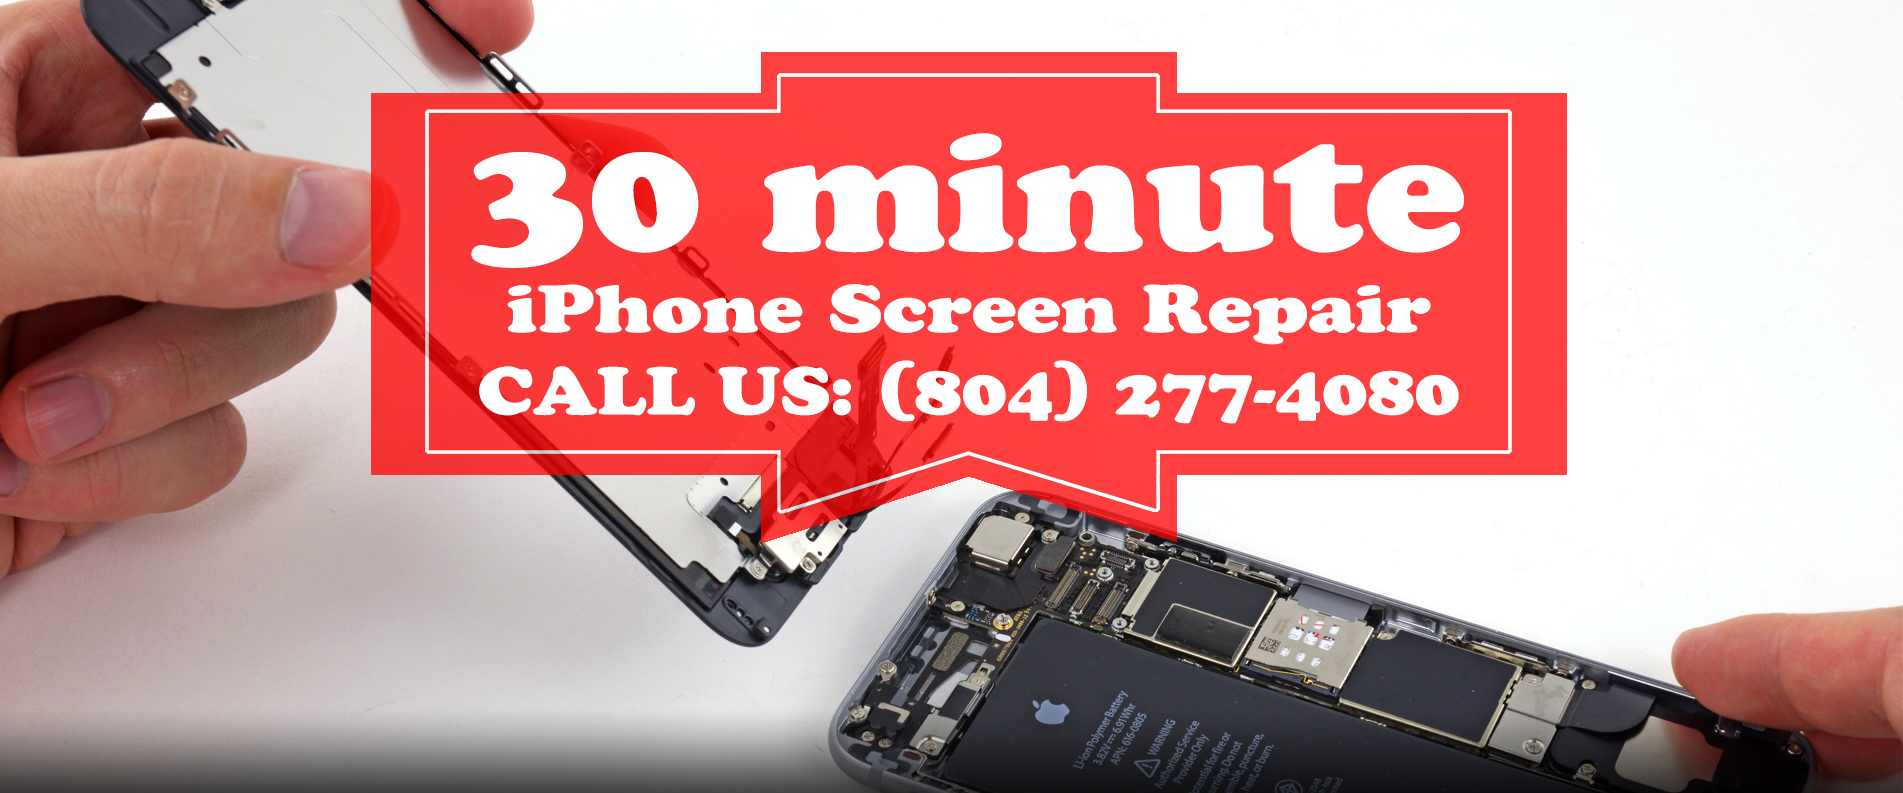 30 Minute iPhone Screen Repair